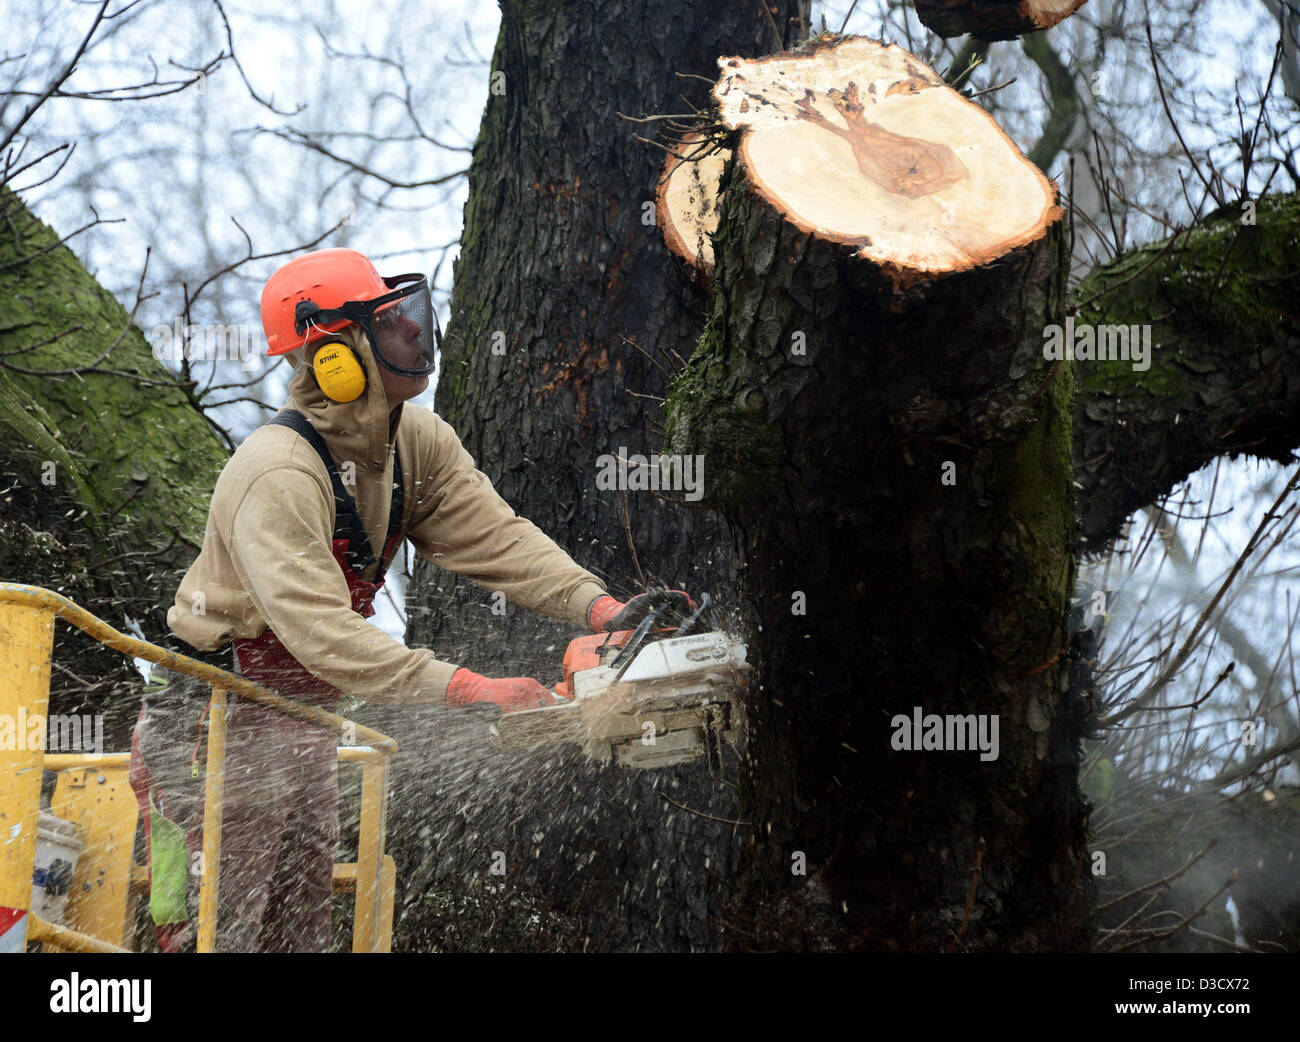 Landscape gardener Johannes Pless cuts down a chestnut in Hamburg, Germany, 16 February 2013. The tree has to be - Stock Image